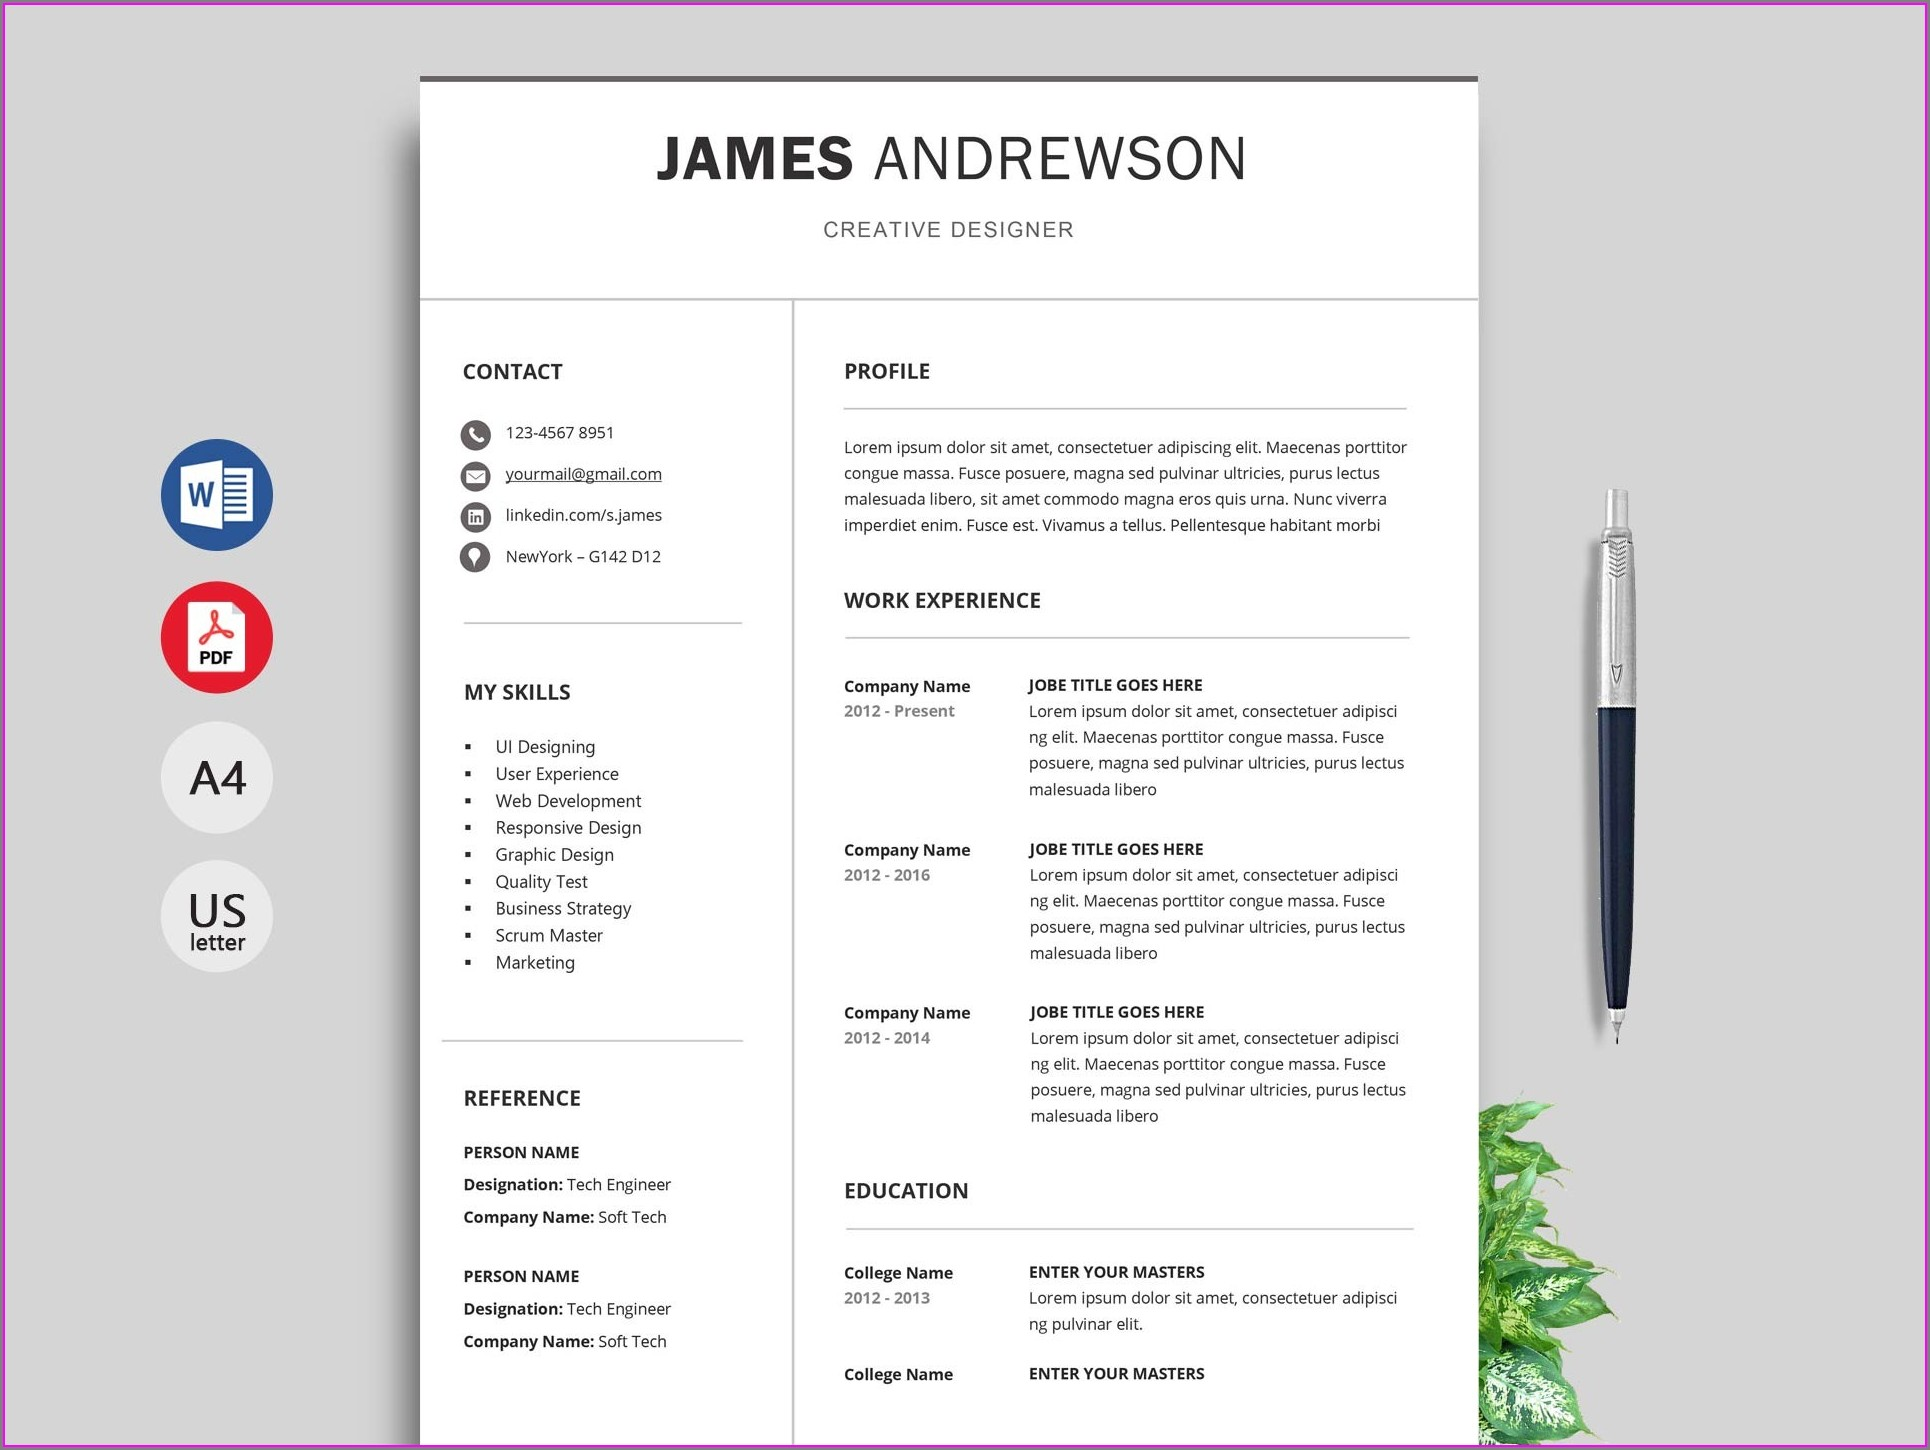 Resume Format In Word Free Download Indian